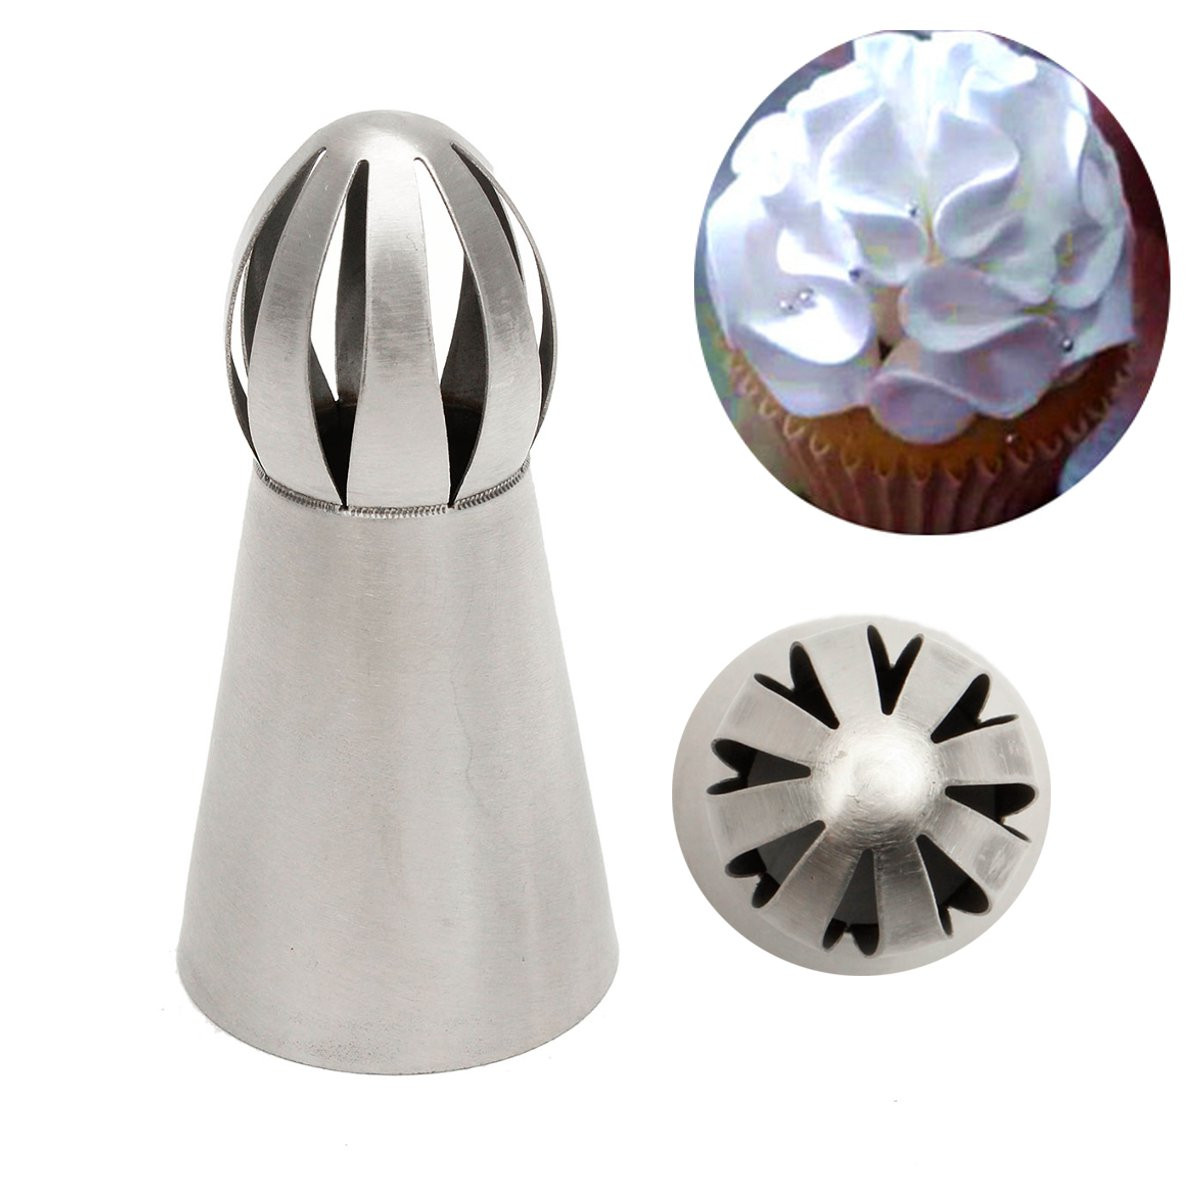 Sphere Ball Shape Flower Icing Piping Nozzles Pastry Tips Cake Decor DIY Sugarcraft Baking Tool